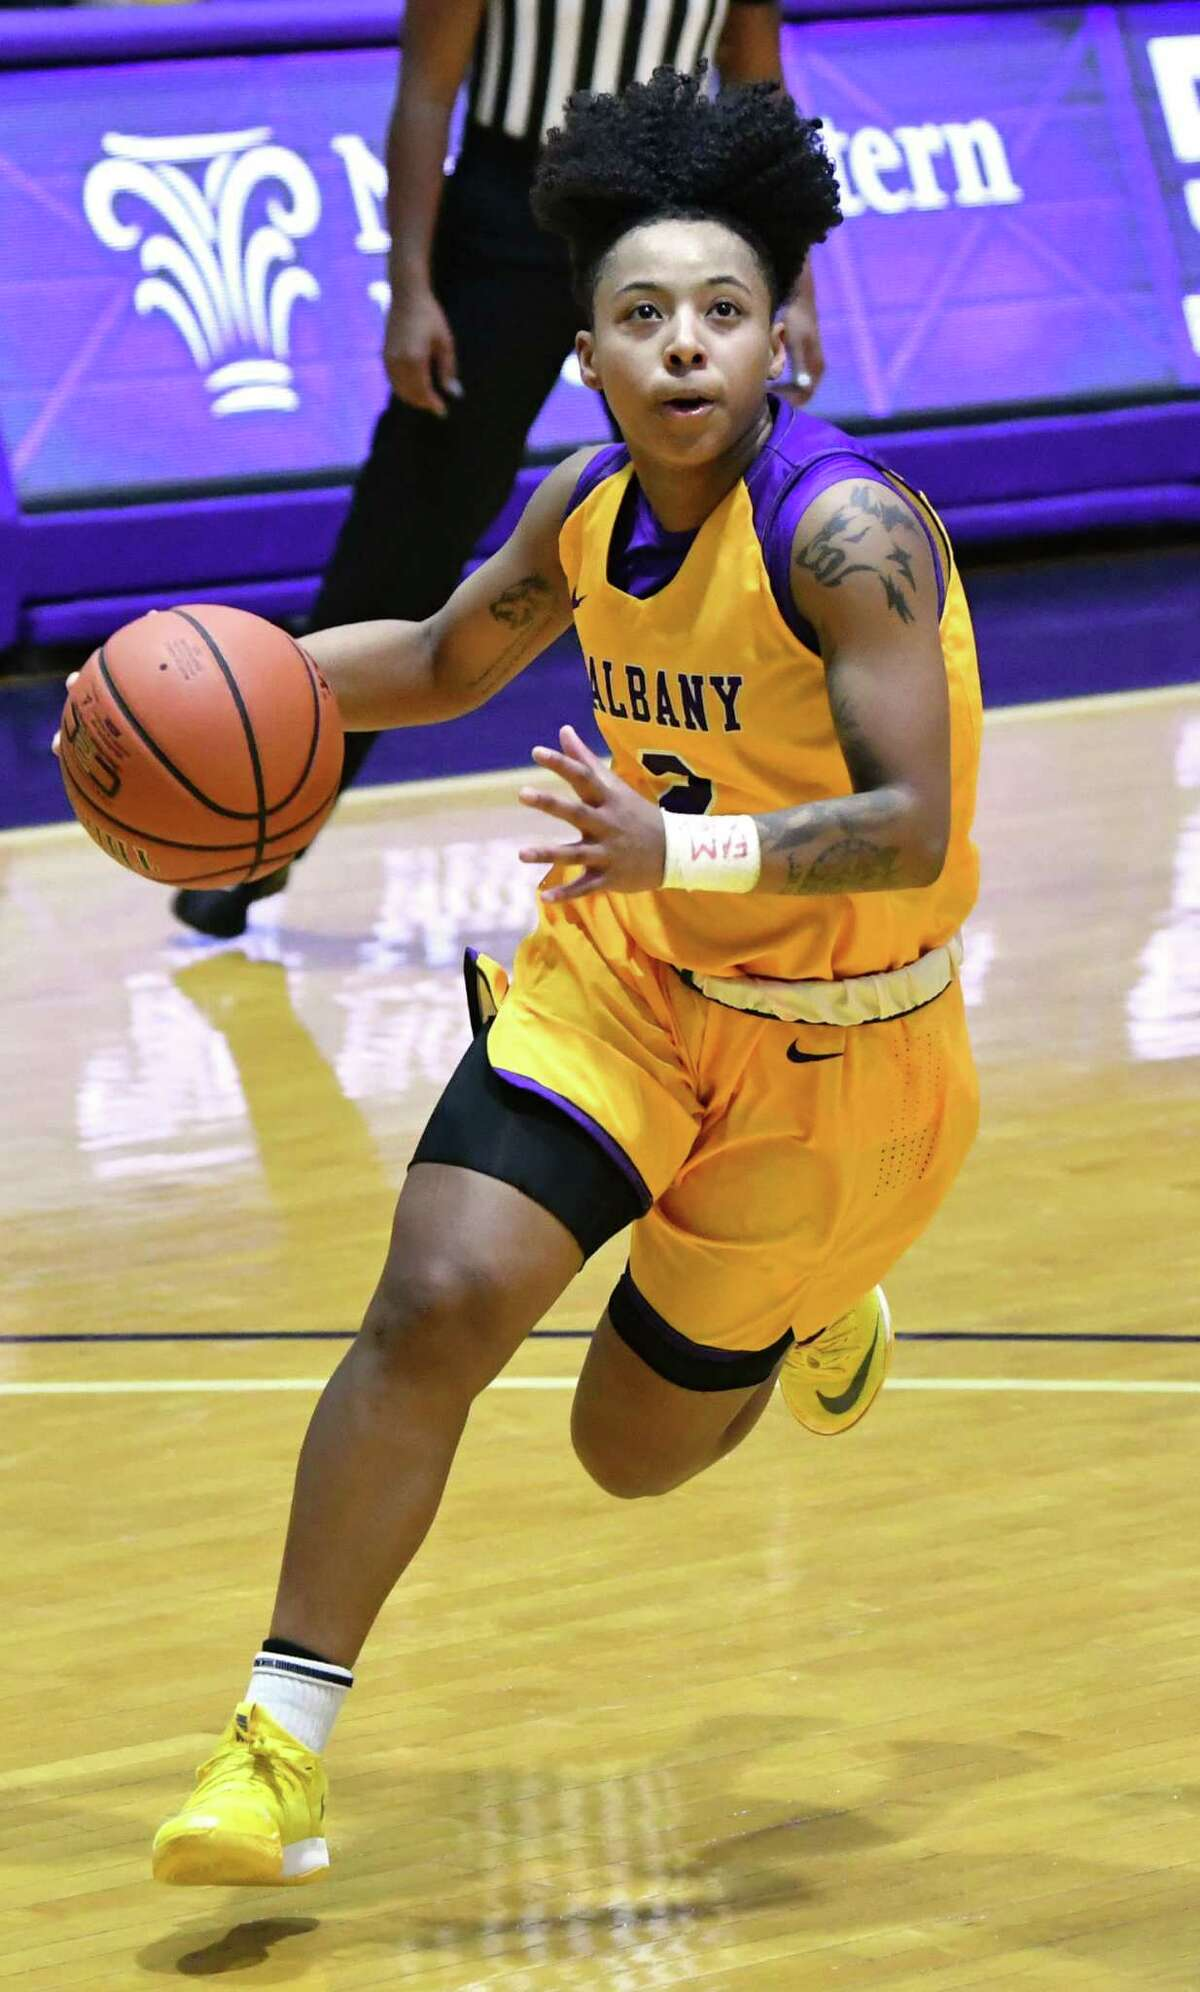 University at Albany's Kyara Frames drives to the hoop during a basketball game against Binghamton at SEFCU Arena on Wednesday, Jan. 2, 2019 in Albany, N.Y. (Lori Van Buren/Times Union)